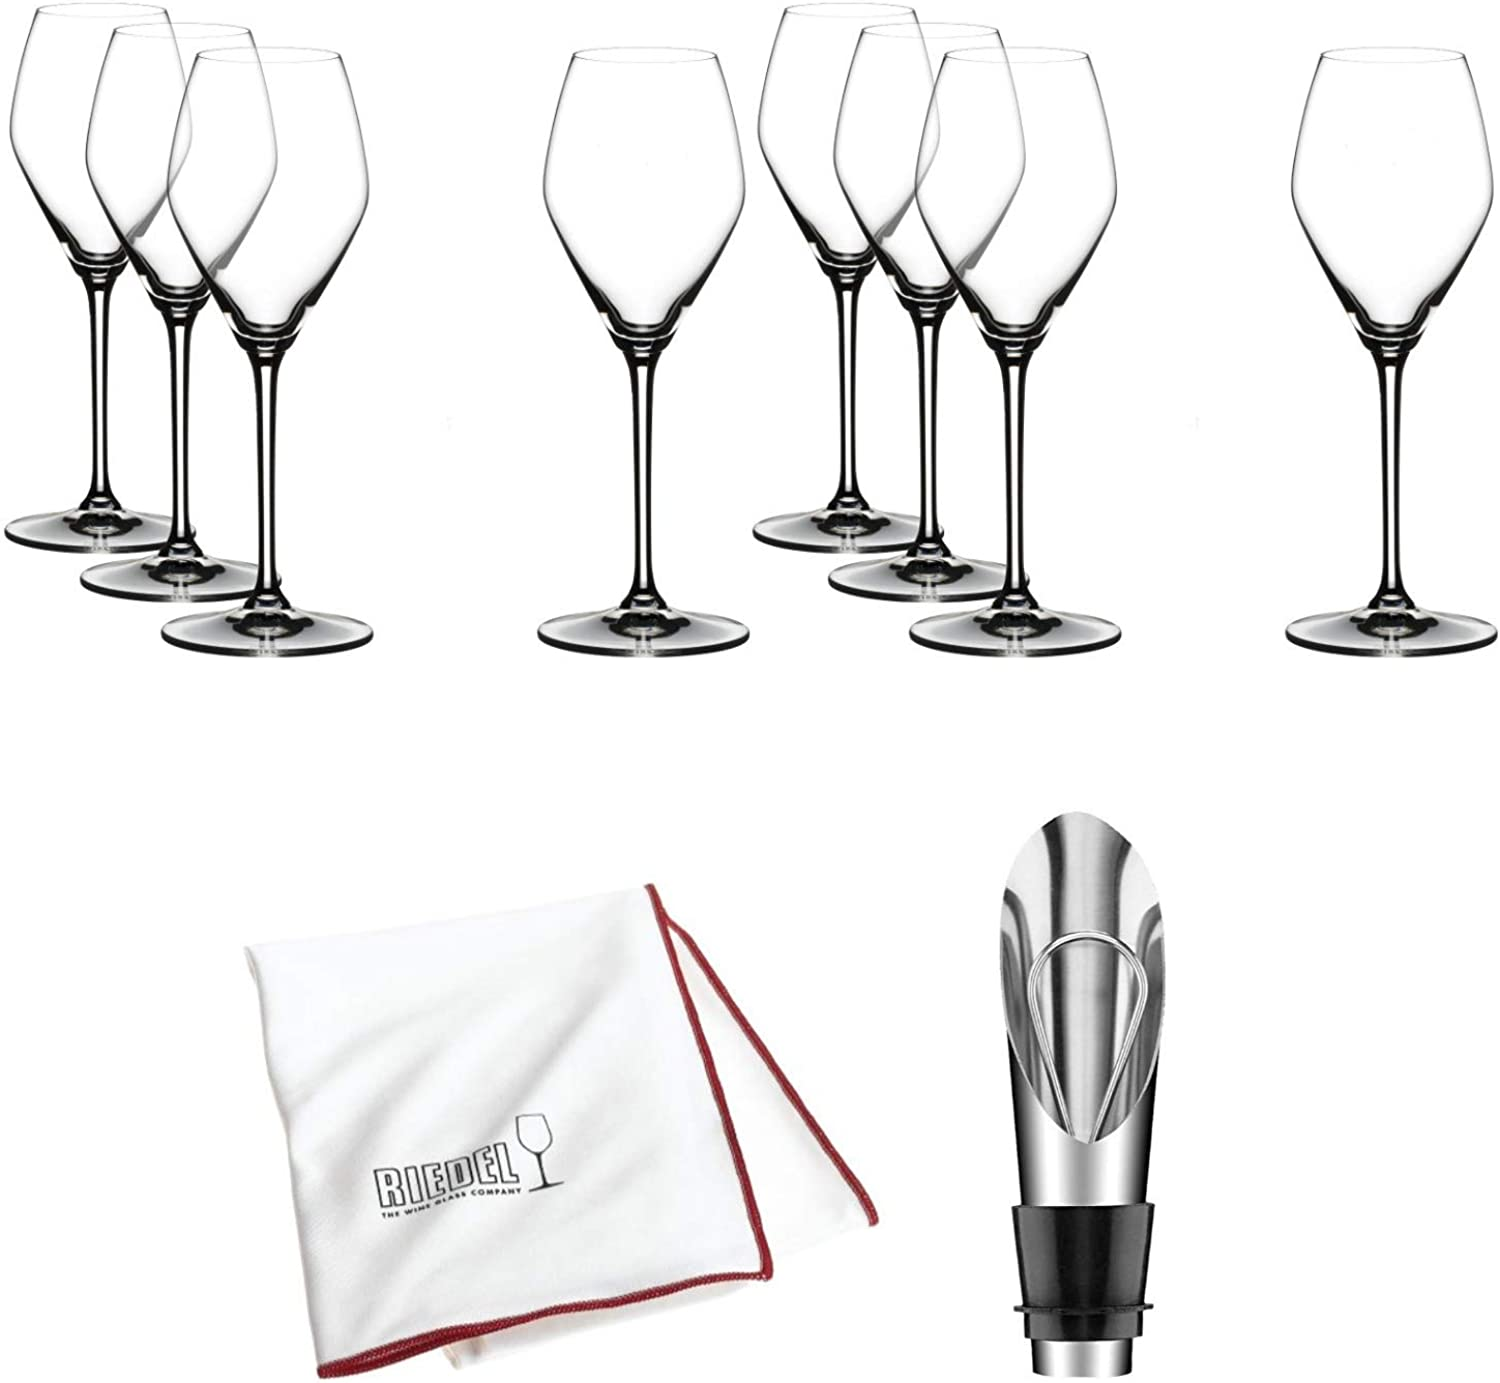 Riedel Extreme Crystal Champagne pink Wine Glass, Set of 8 Glasses Includes Wine Pourer with Stopper, Bottle Opener and Polishing Cloth